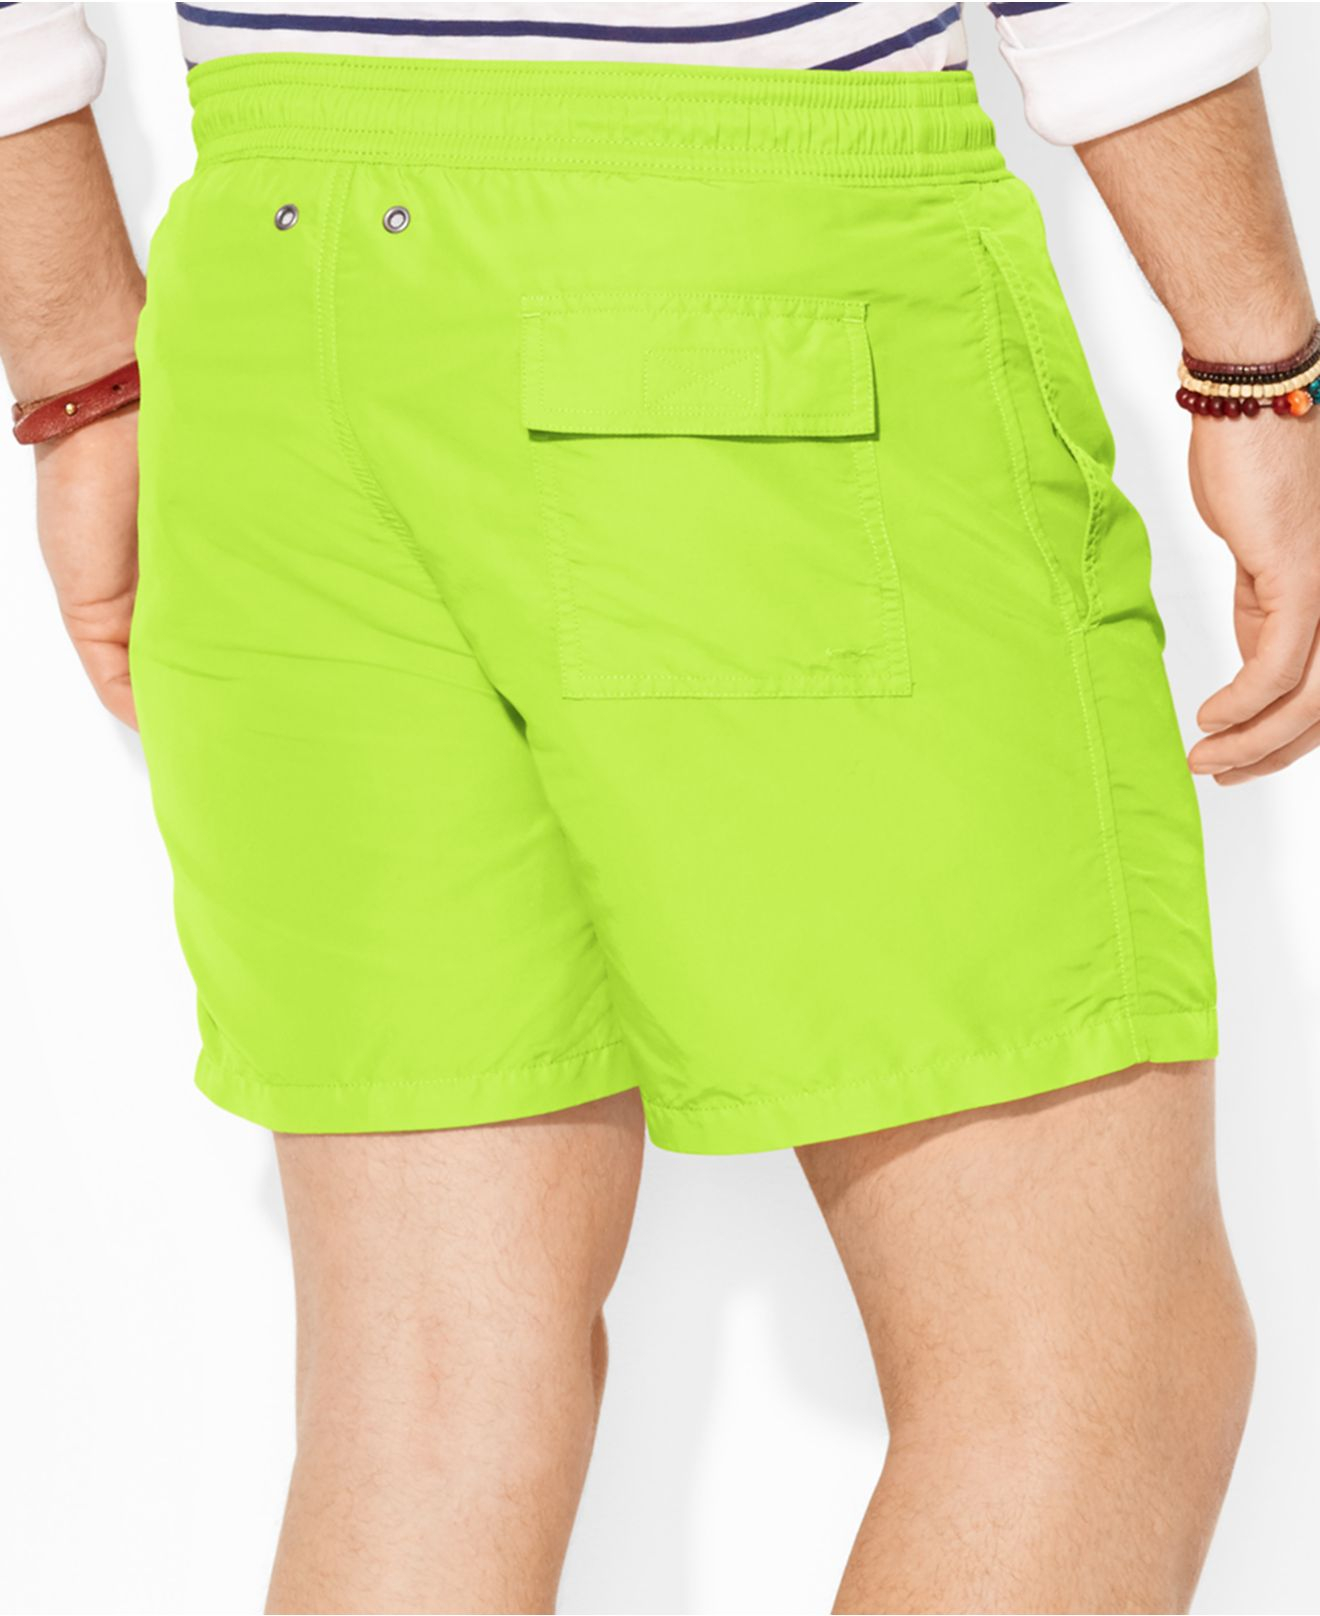 Shorts & Swimwear REFINE BY: Brand. View All; chaps paul gray polo ralph lauren Big and Tall Athleisure Shorts $ Quick View. CHAPS. Big and Tall Stretch Twill Flat Front Shorts $ NOW $ - $ Quick View. CHAPS. Big and Tall Stretch Poplin Bermuda Shorts.